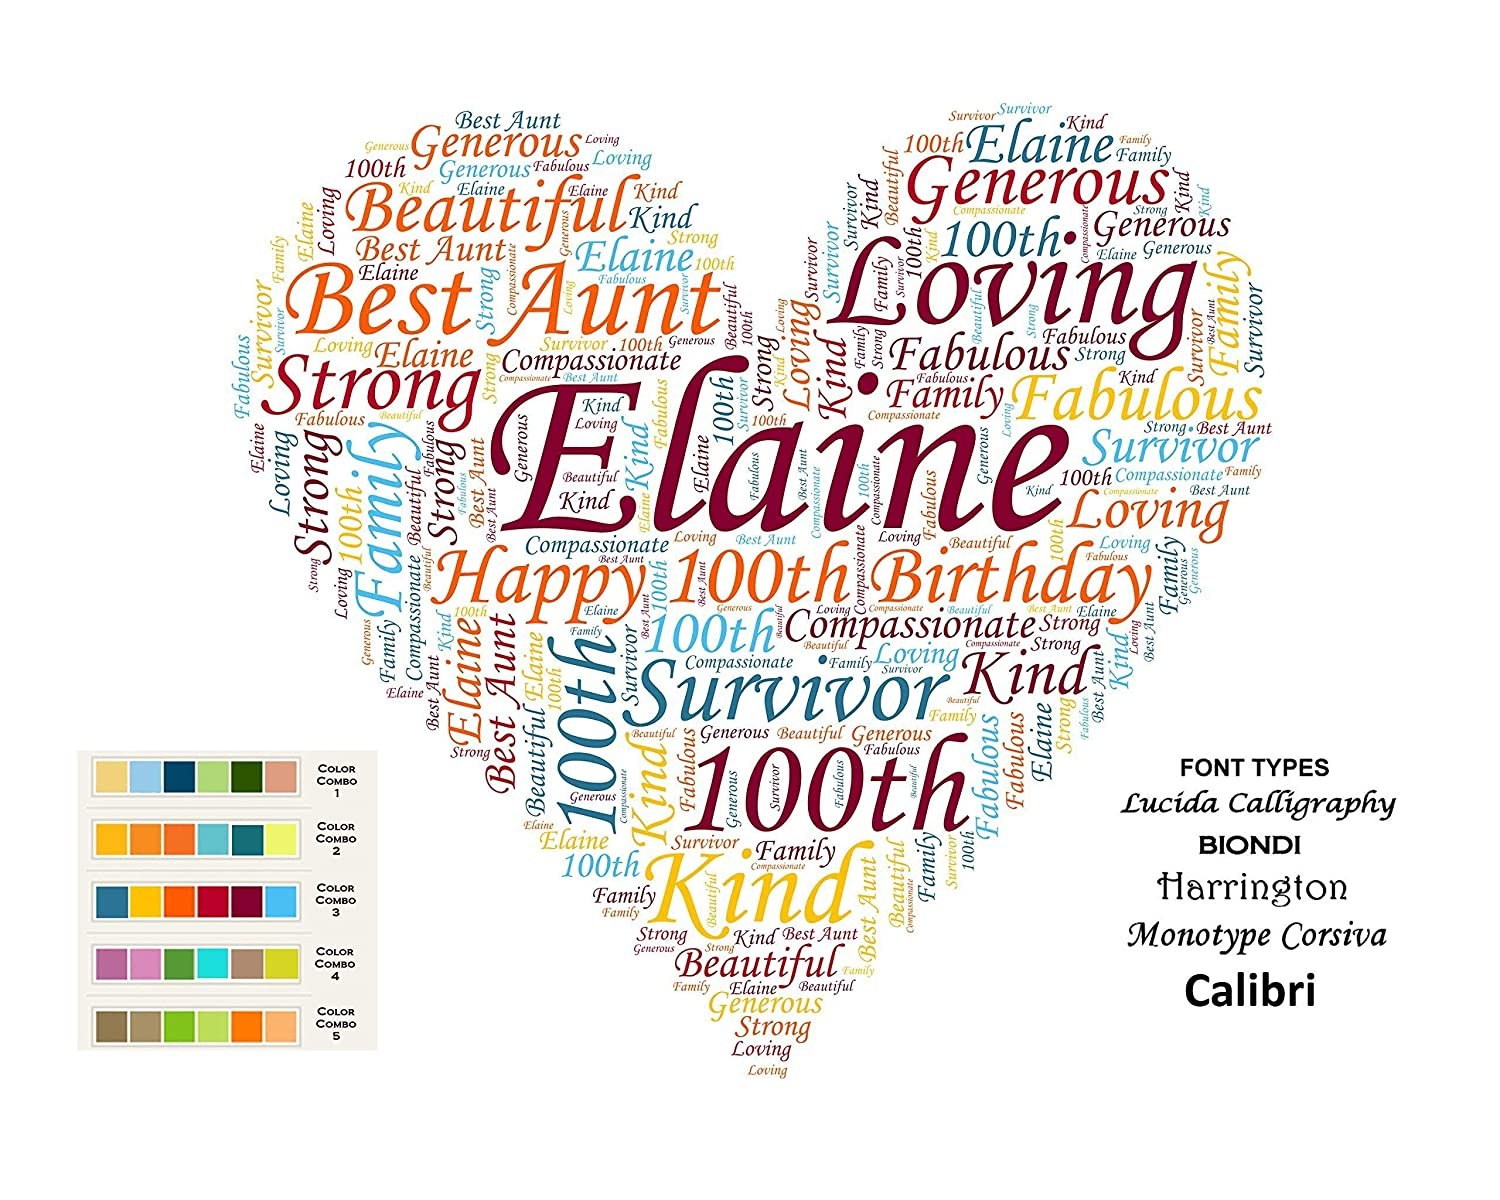 100th Birthday Gifts Birthay Gift Ideas 100 Personalized One Hundred For Her Him Man Woman Men Women